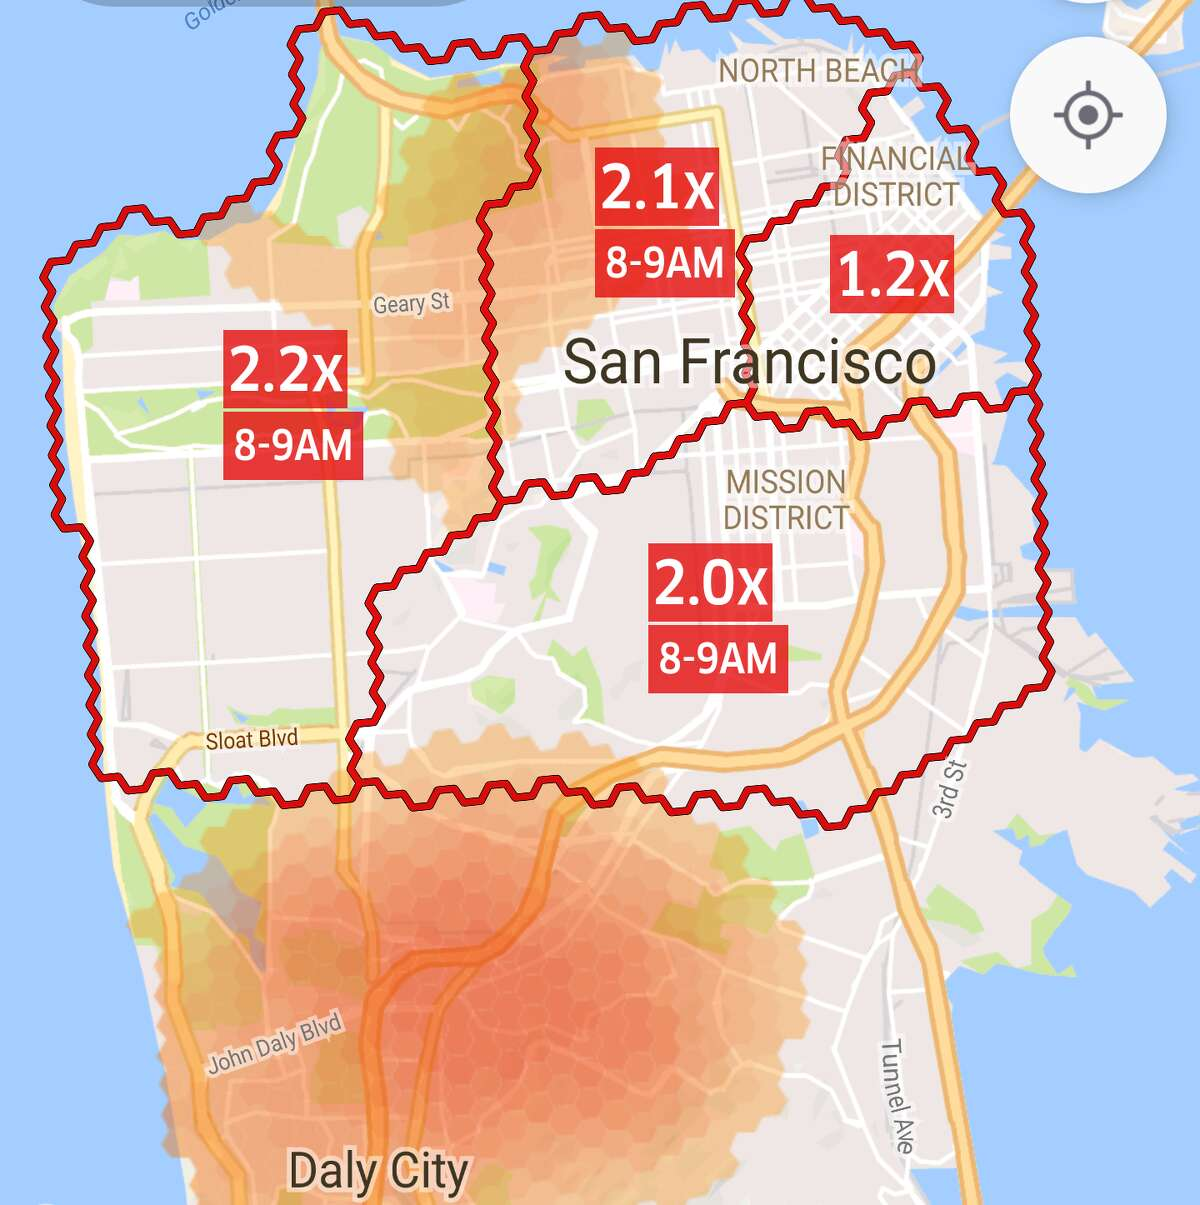 By Uber using guaranteed Earnings Boosts to encourage drivers to saturate communities like the Richmond, Marina, and Noe Valley, riders there often pay no surge pricing because drivers often outnumber ride requests, while communities without active Earnings Boosts, like the Outer Mission and Ingleside, can suffer by having a deficit of drivers -- the result of which is increased surge pricing.